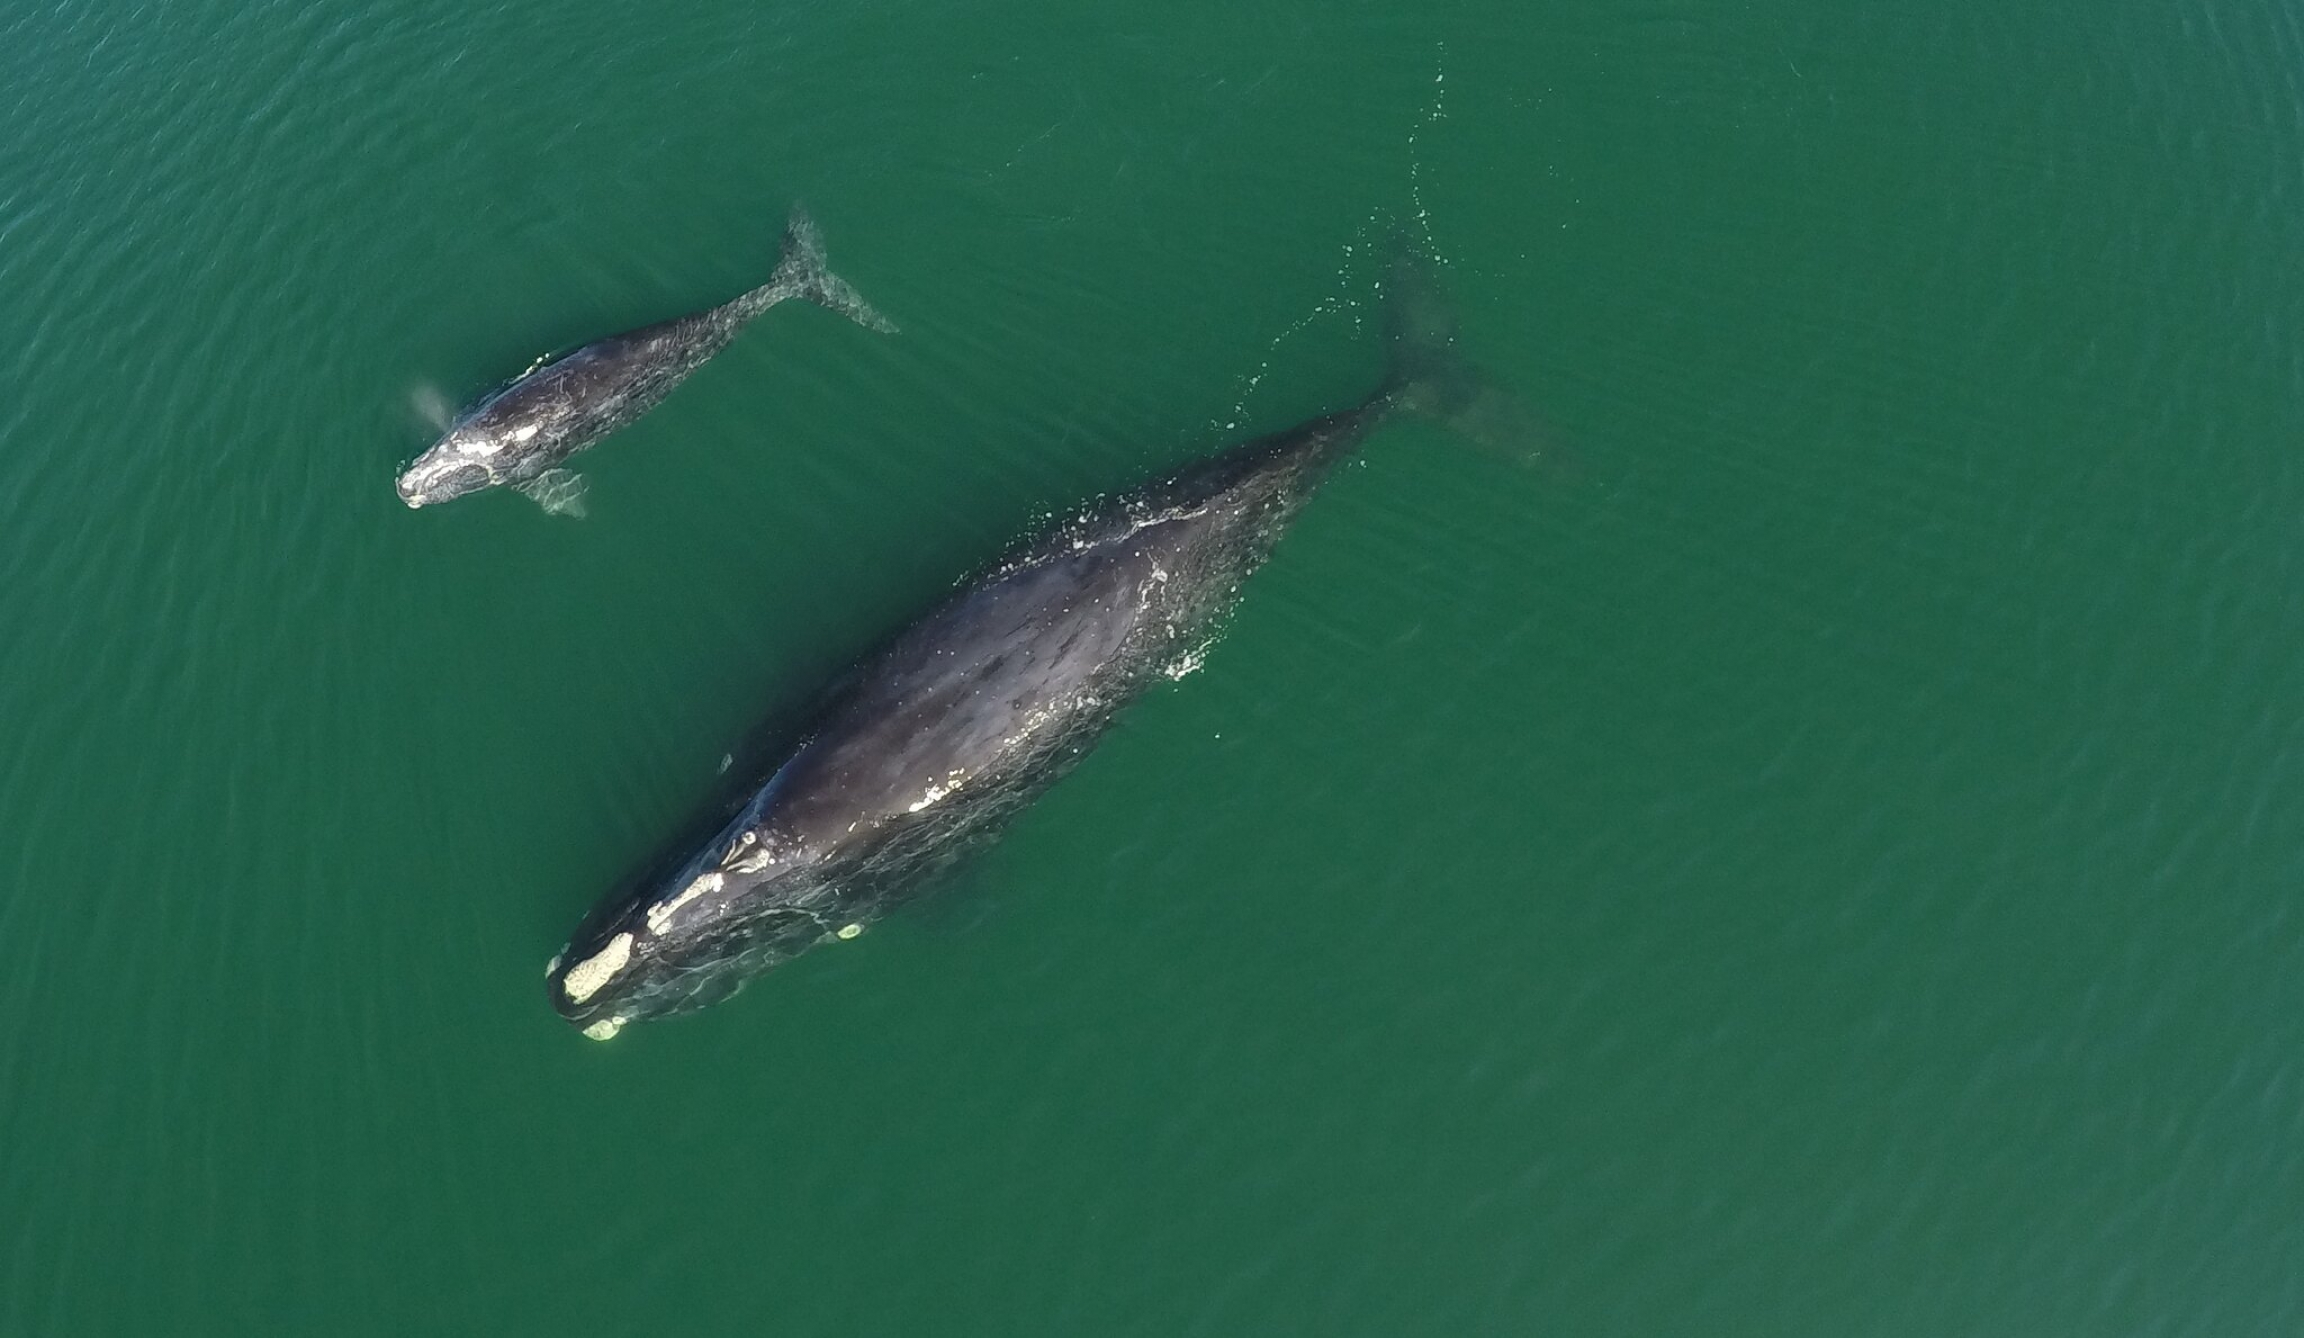 North Atlantic right whale with calf in blue-green waters